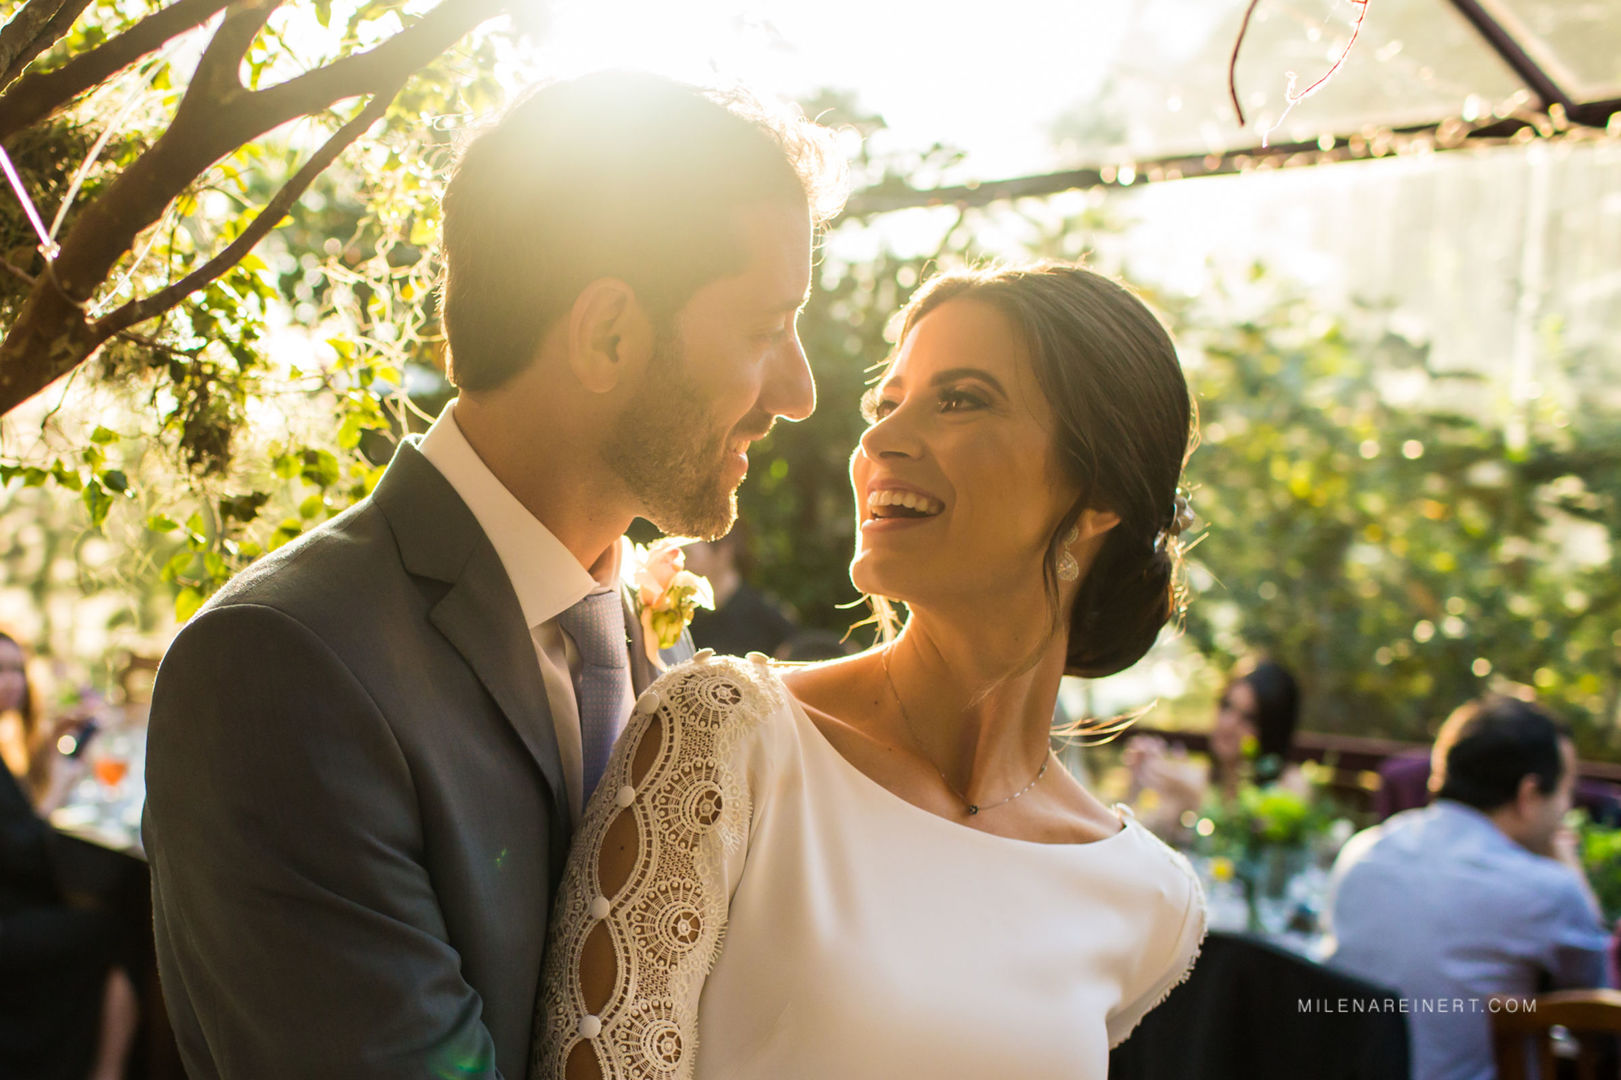 Casamento Bettina Bub Bistrô | Izabel + Max